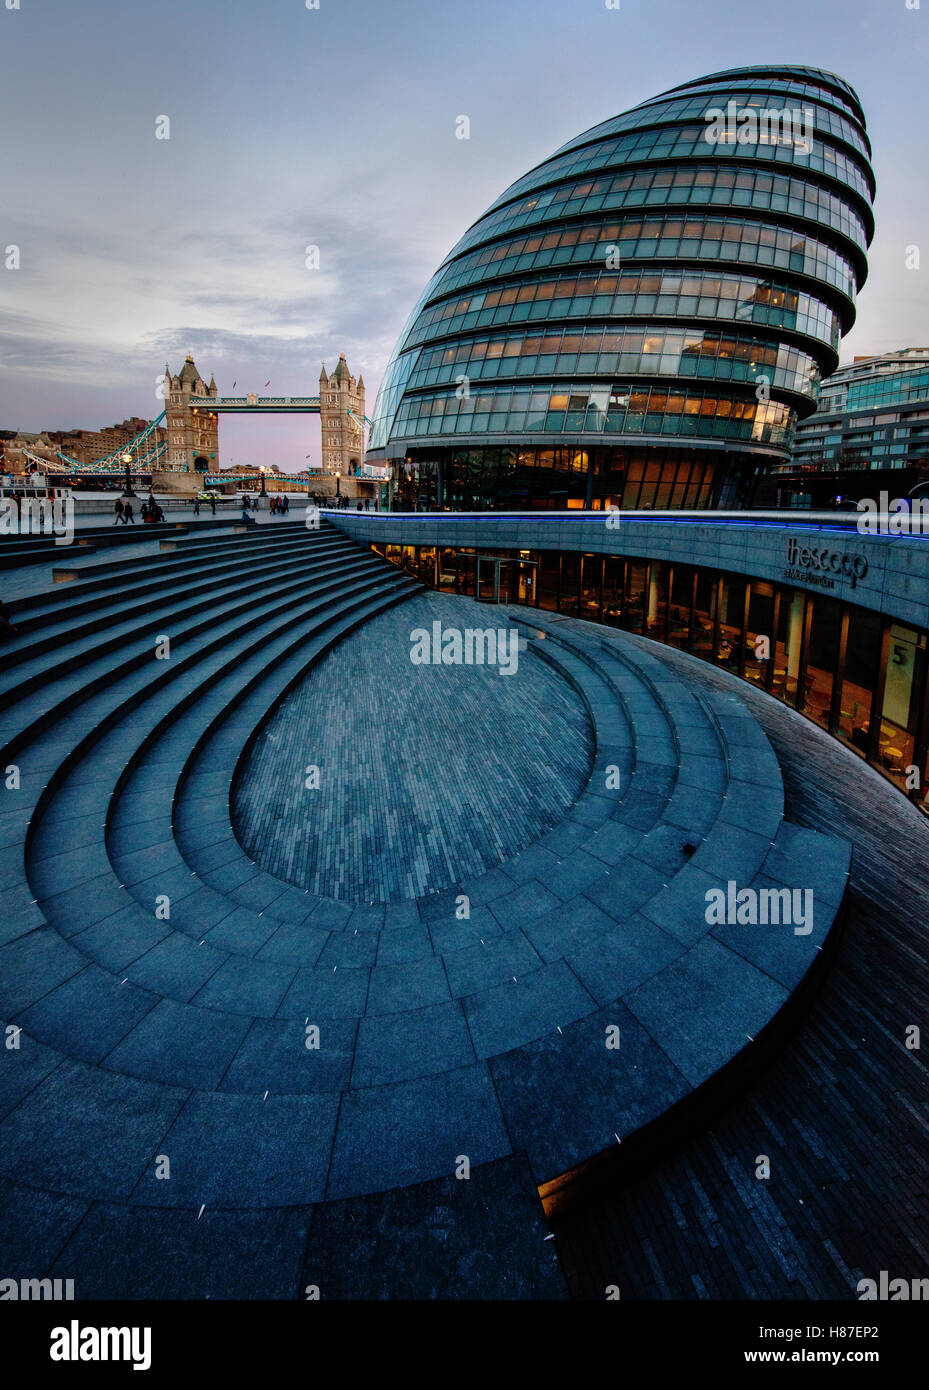 City Hall near Tower Bridge - home to the Mayor of London the Greater London Authority and London Assembly at dusk - Stock Image